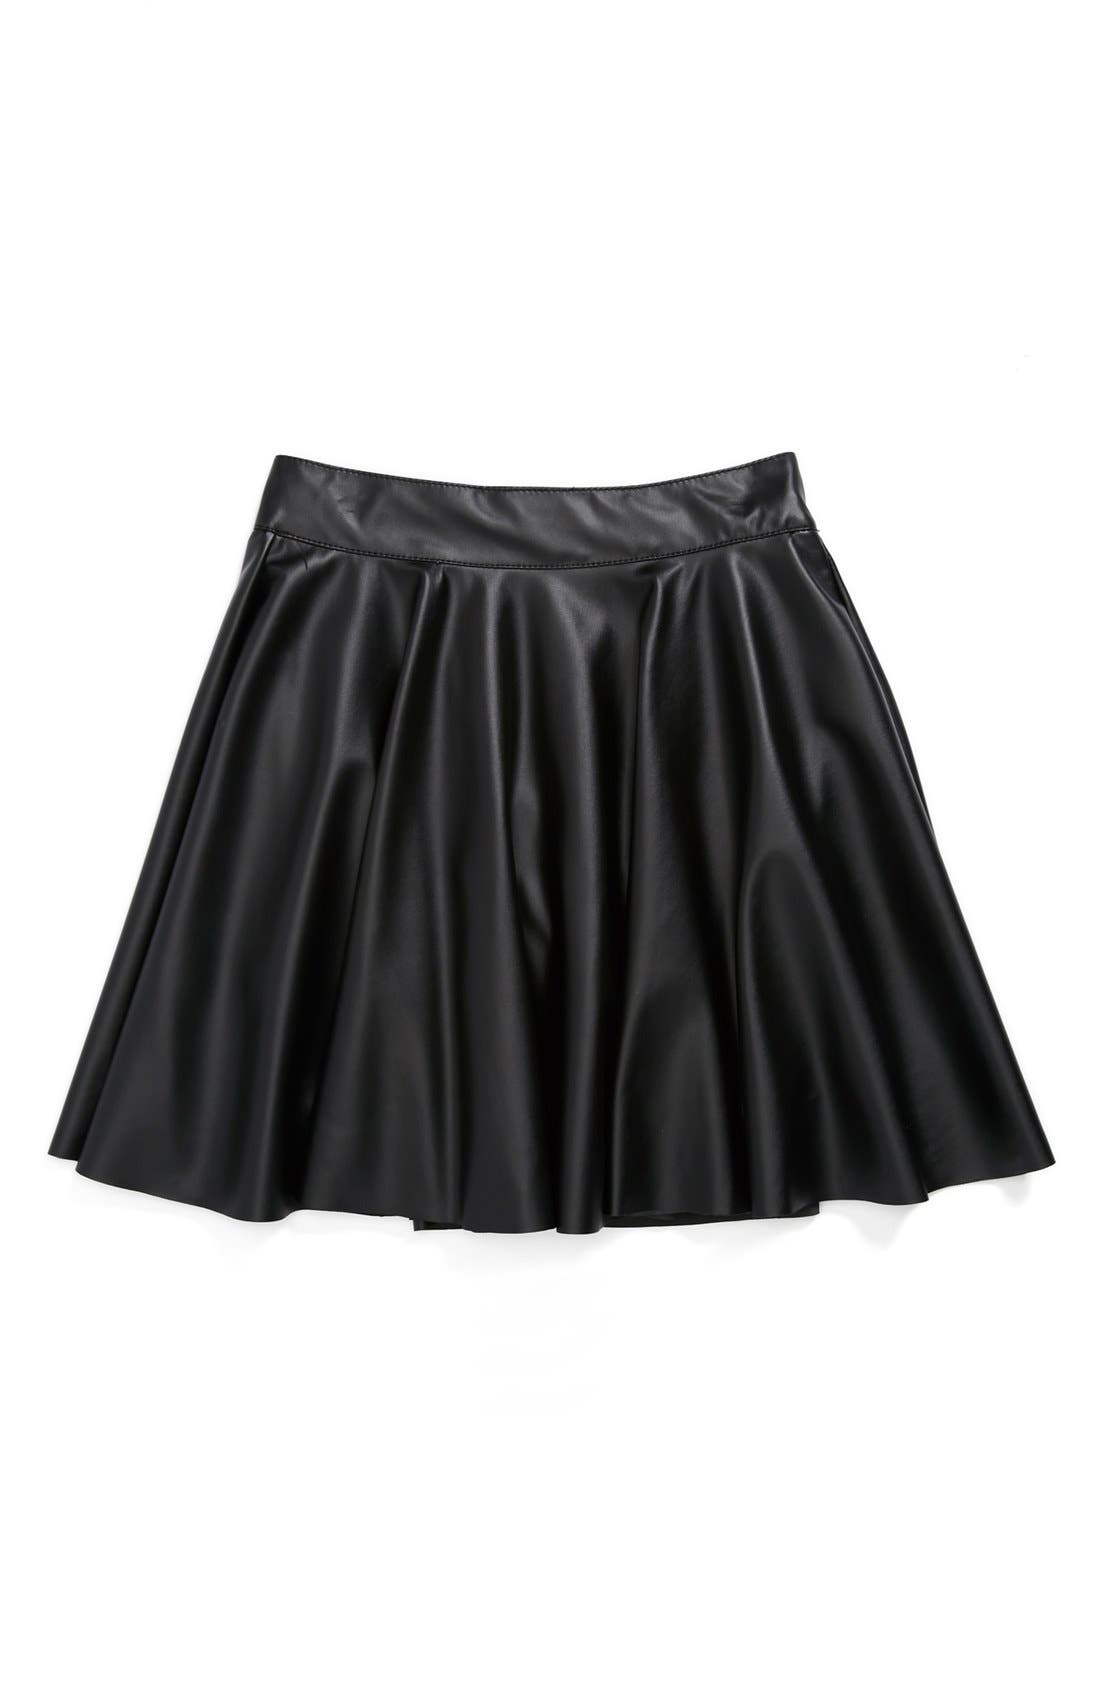 Alternate Image 1 Selected - Un Deux Trois 'Flirt' Skirt (Big Girls)